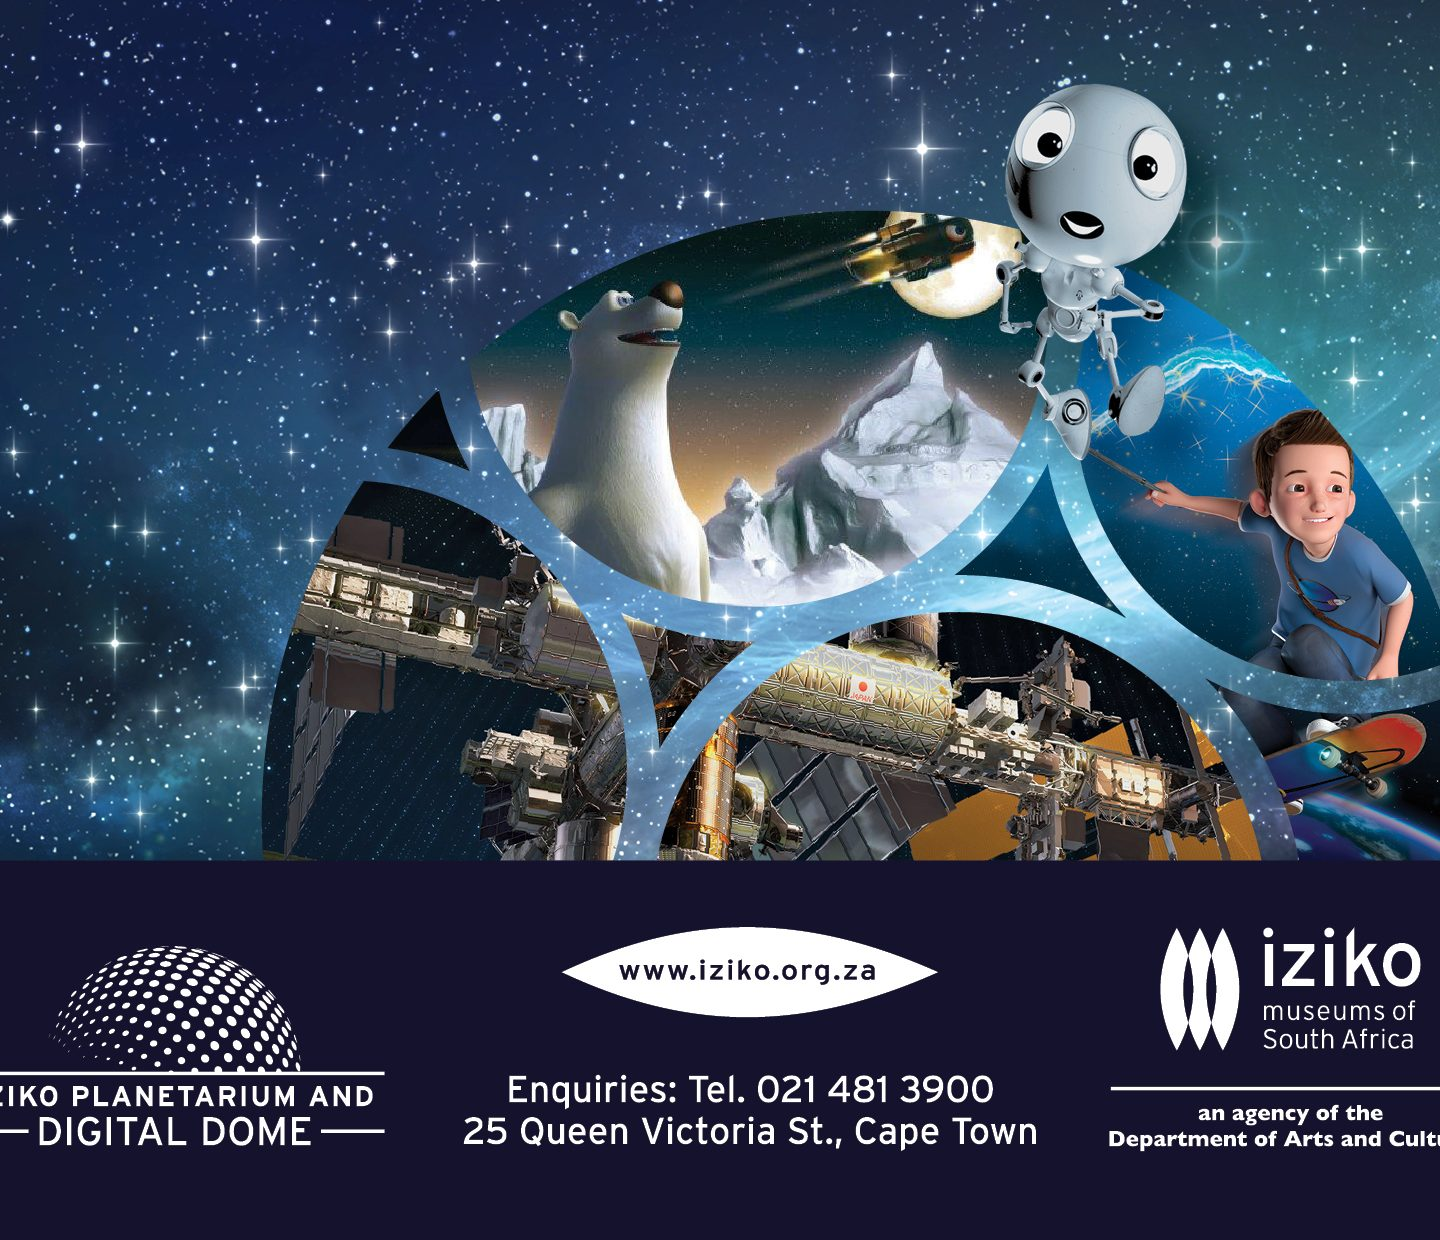 Enter to WIN 2 x tickets for the Iziko Planetarium and the AMAZING Digital Dome @Iziko_Museums